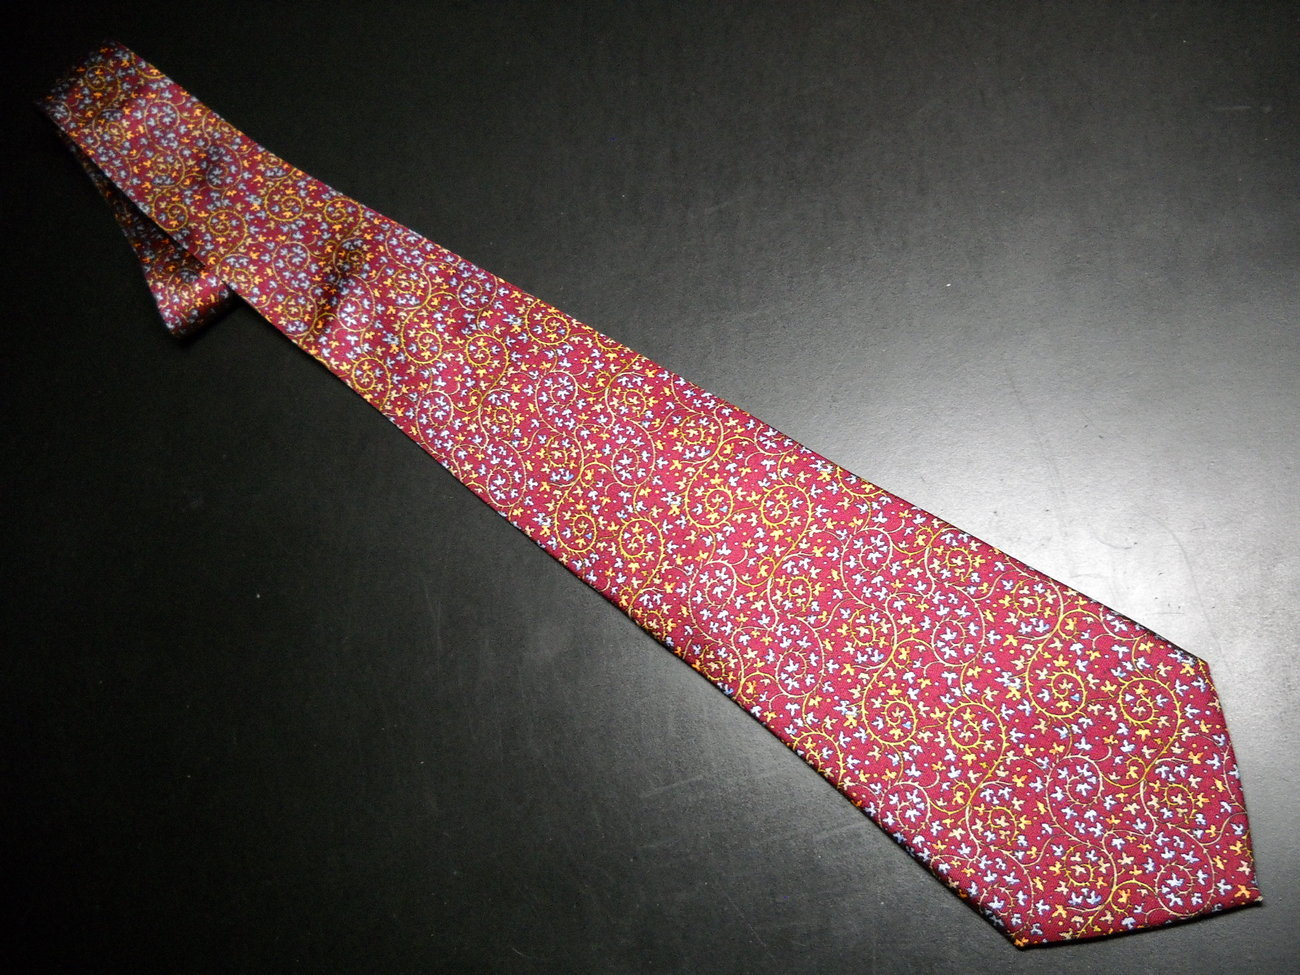 Tie metropolitan museum of art english red with blues and golds 01